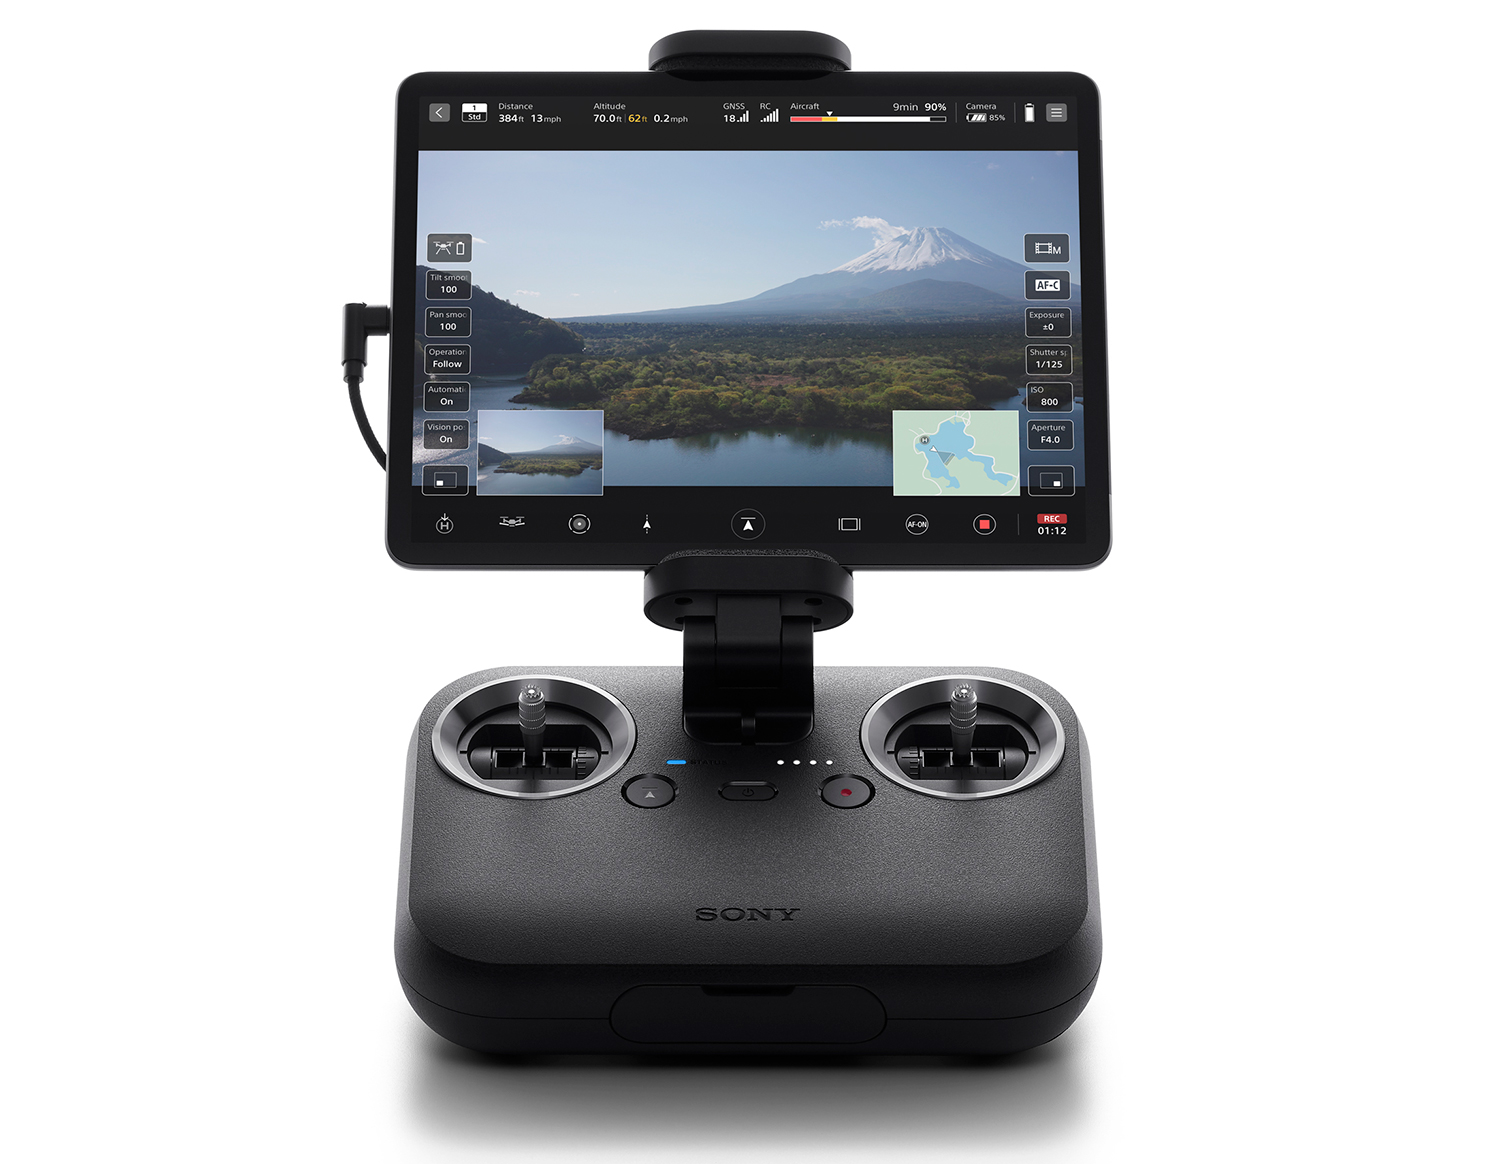 Photo of Sony Airpeak drone controller